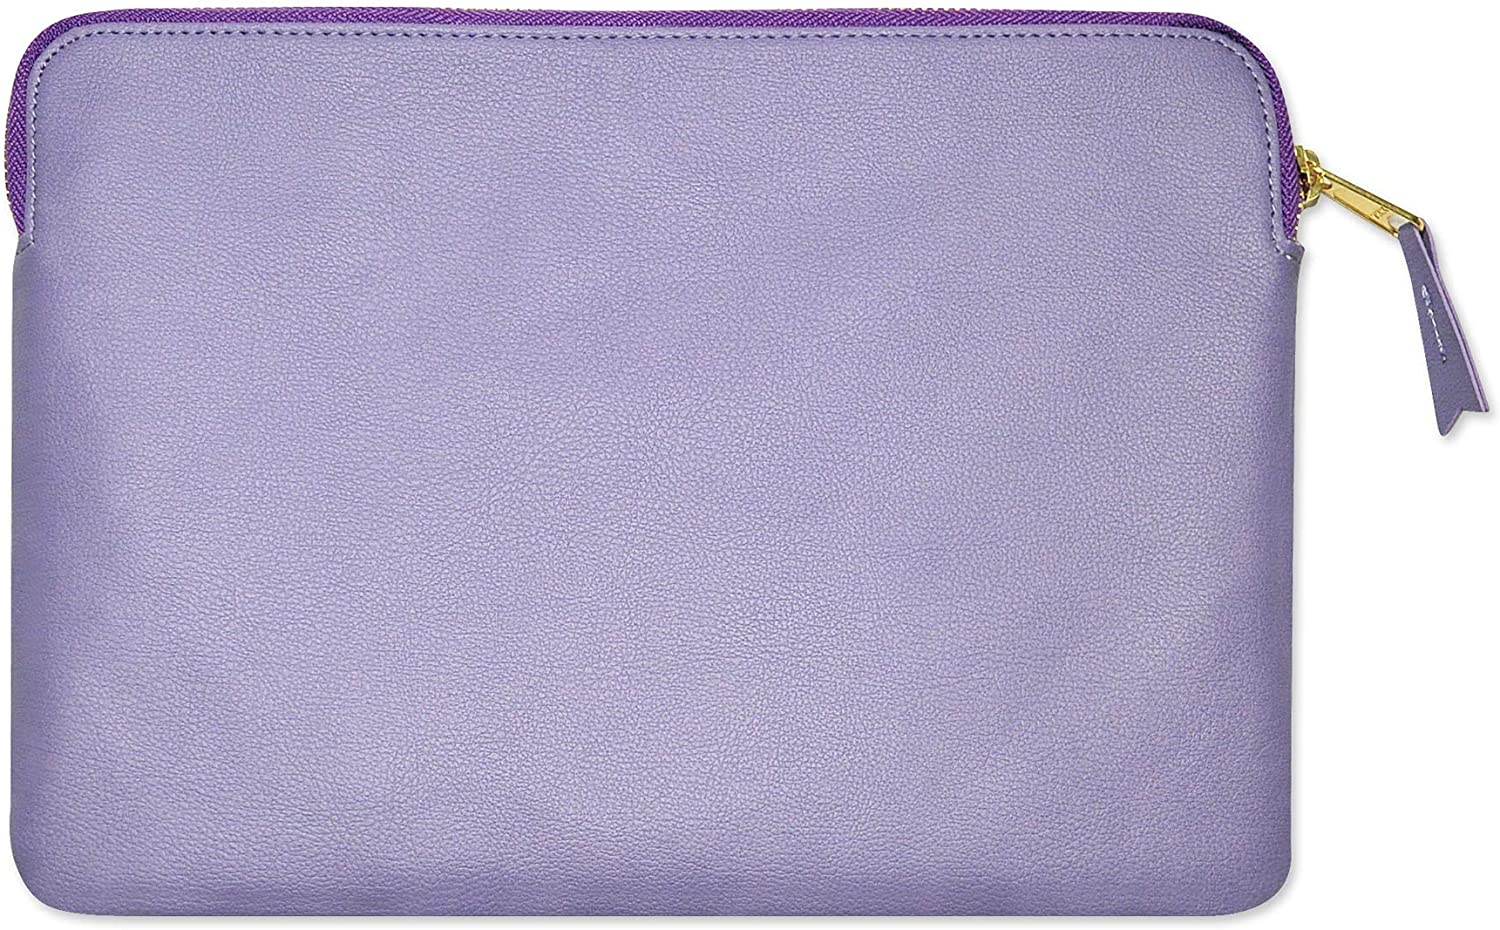 Bellagenda Sleeve case for iPad Pro 11 inch | 10.5 inch for iPad Pro | 9.7 inch Sleeve Case for iPad | Protective Bag for Samsung Galaxy Tab | Fits 9.7 to 11 inch Tablet | YKK Zipper (Lavender)